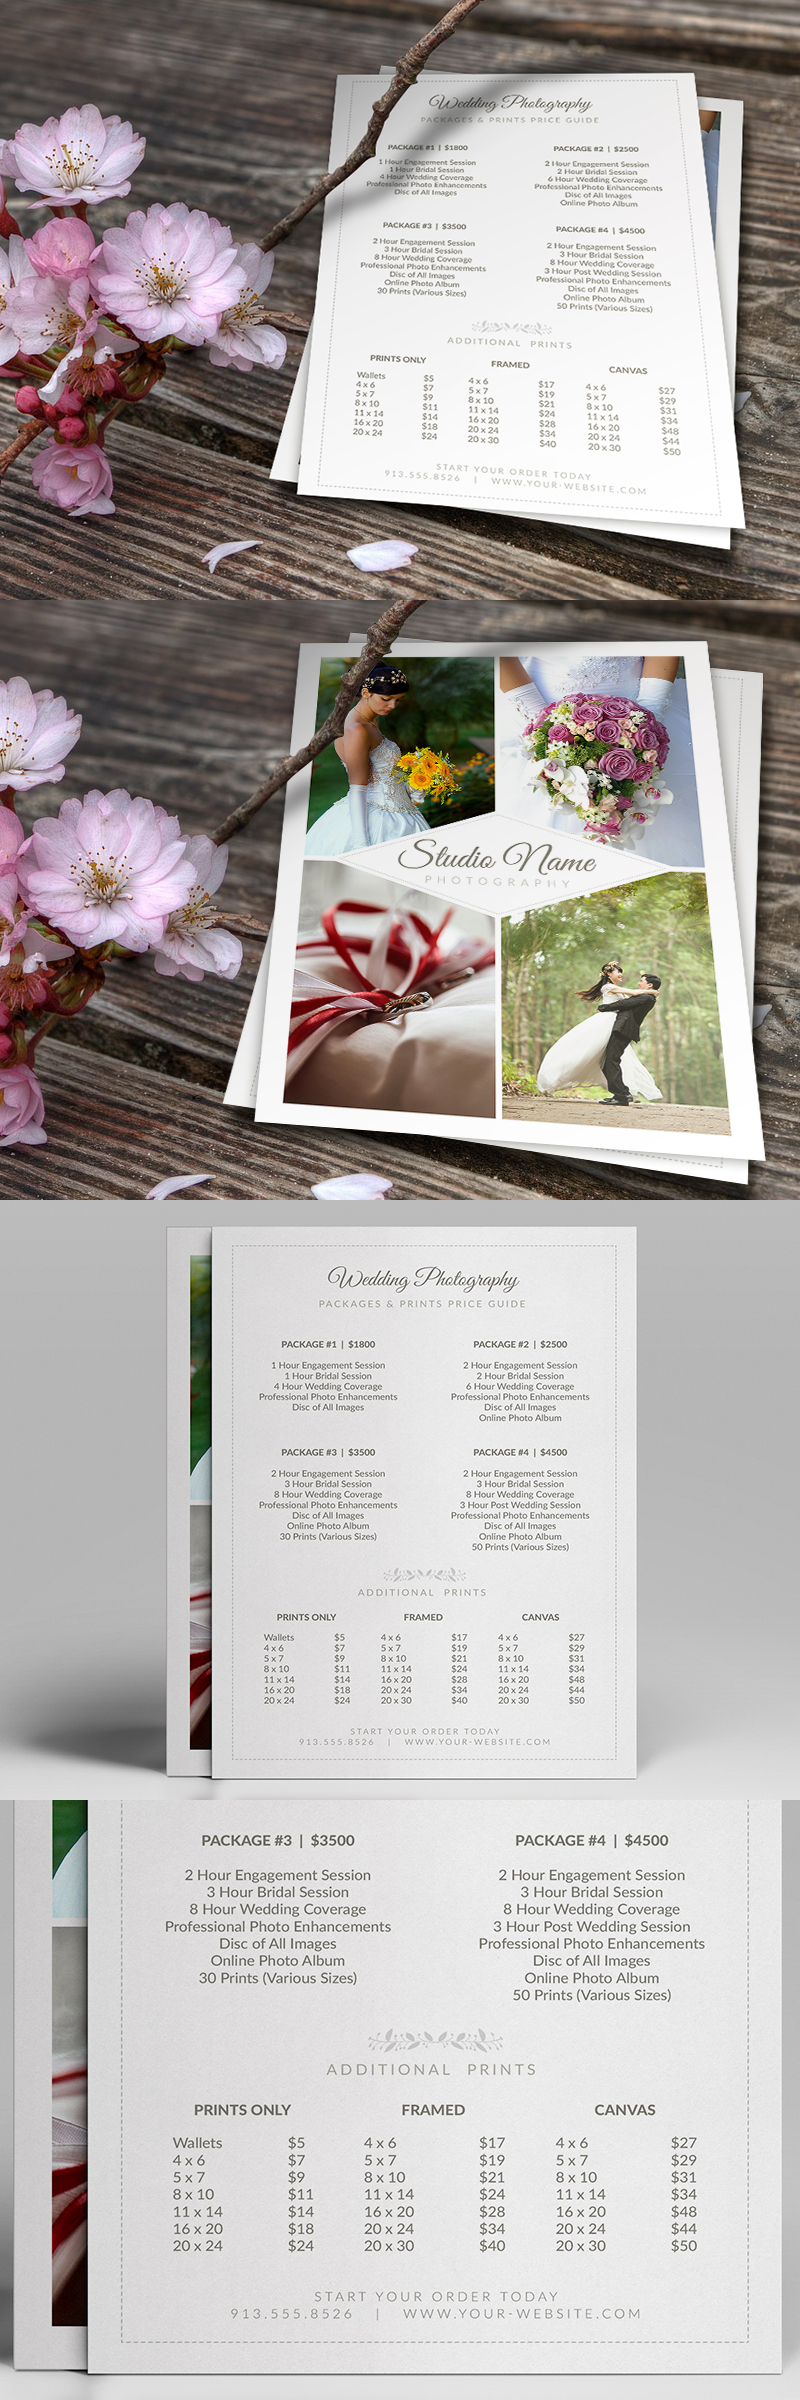 WeddingPhotographer_PriceList_5x7_v2_CursiveQ_preview_long